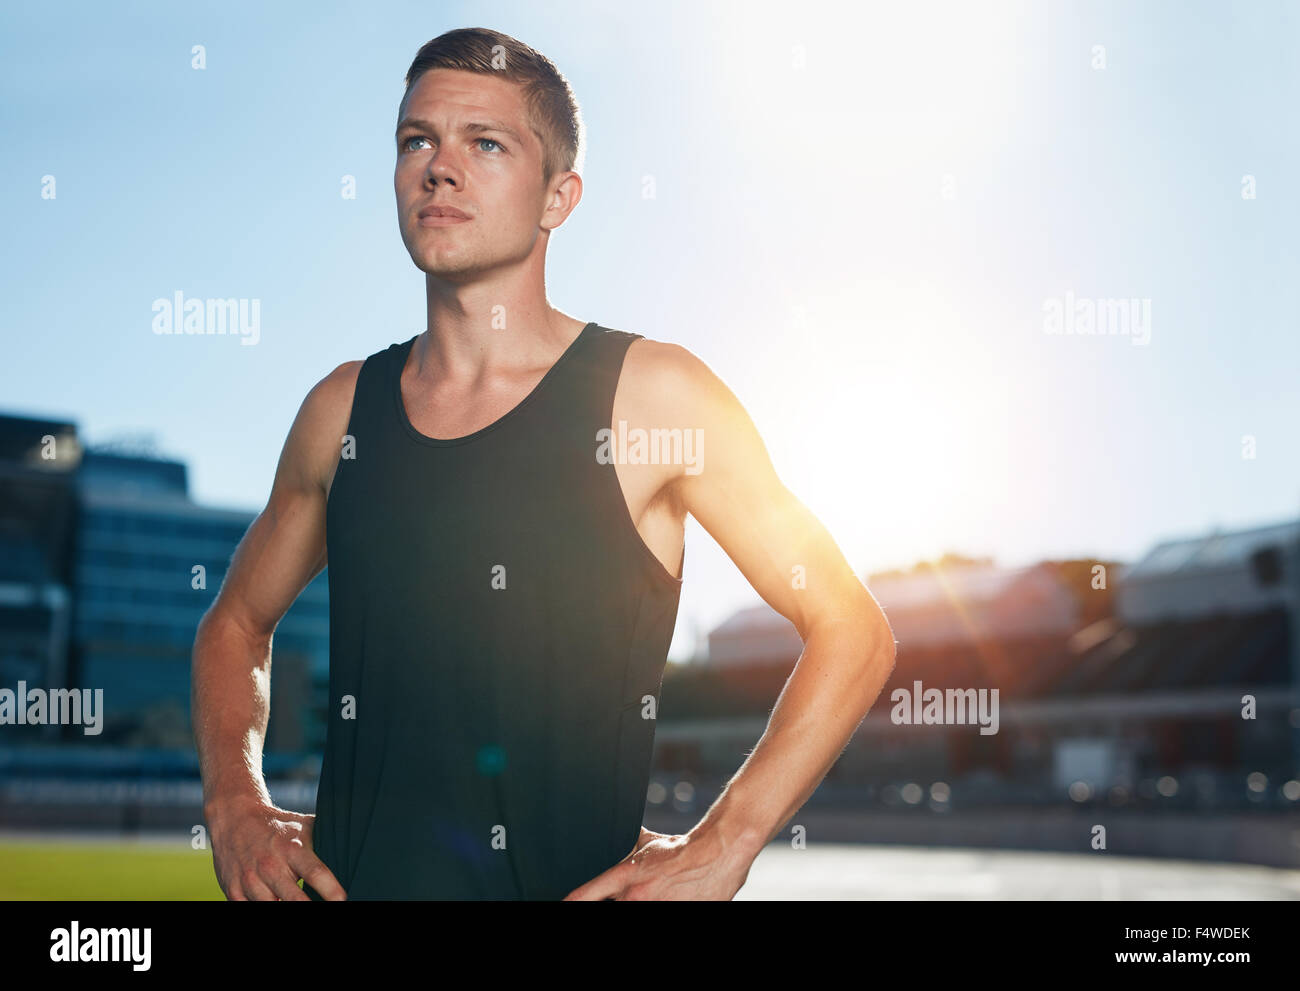 Young male runner standing with his hands on hips looking away. Determined athlete on race track in athletics stadium Stock Photo